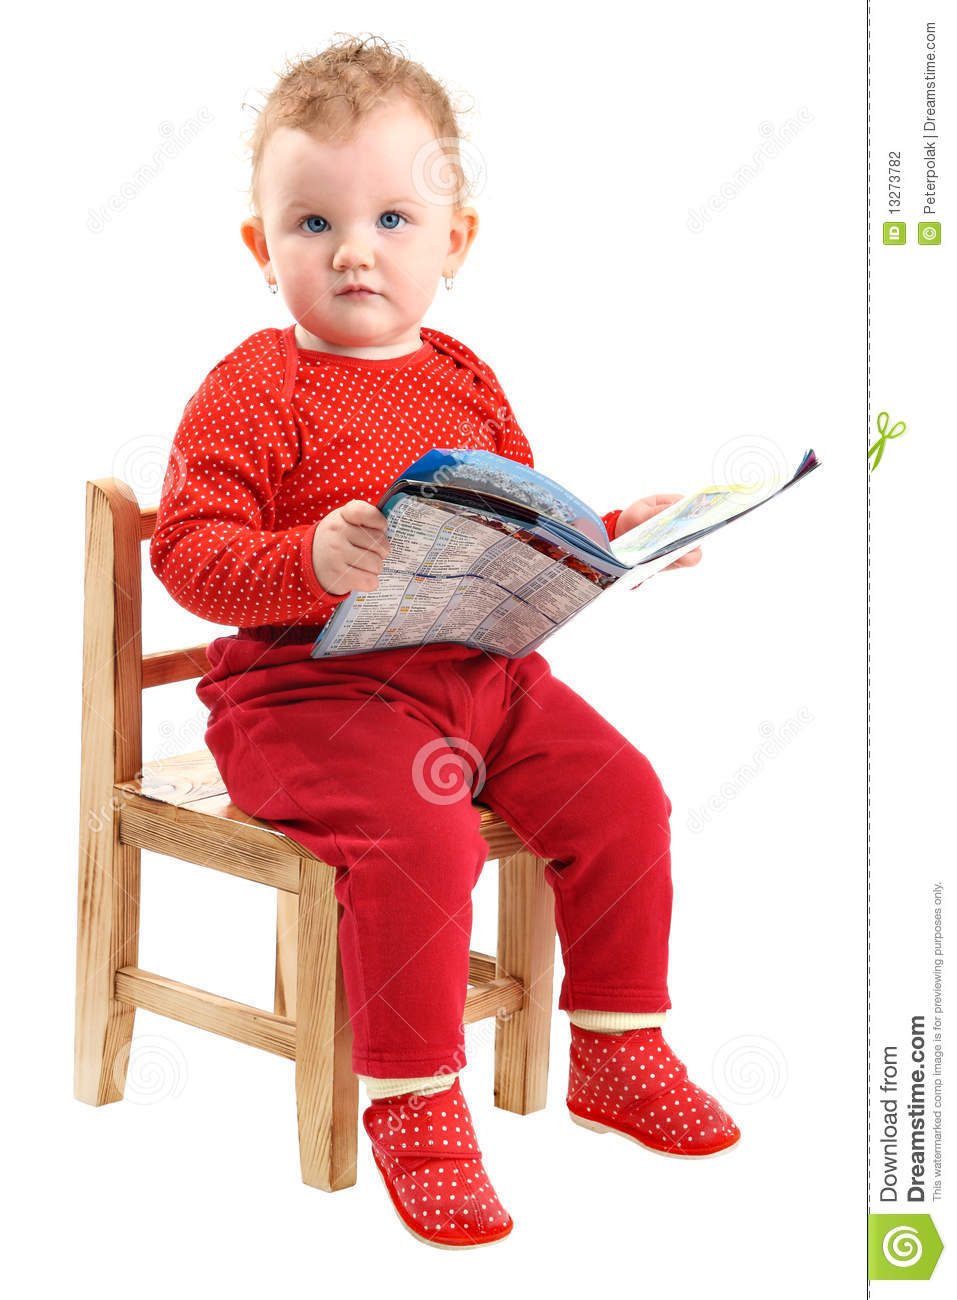 Baby girl dressed in red sitting on chair reading stock for Toddler sitting chair